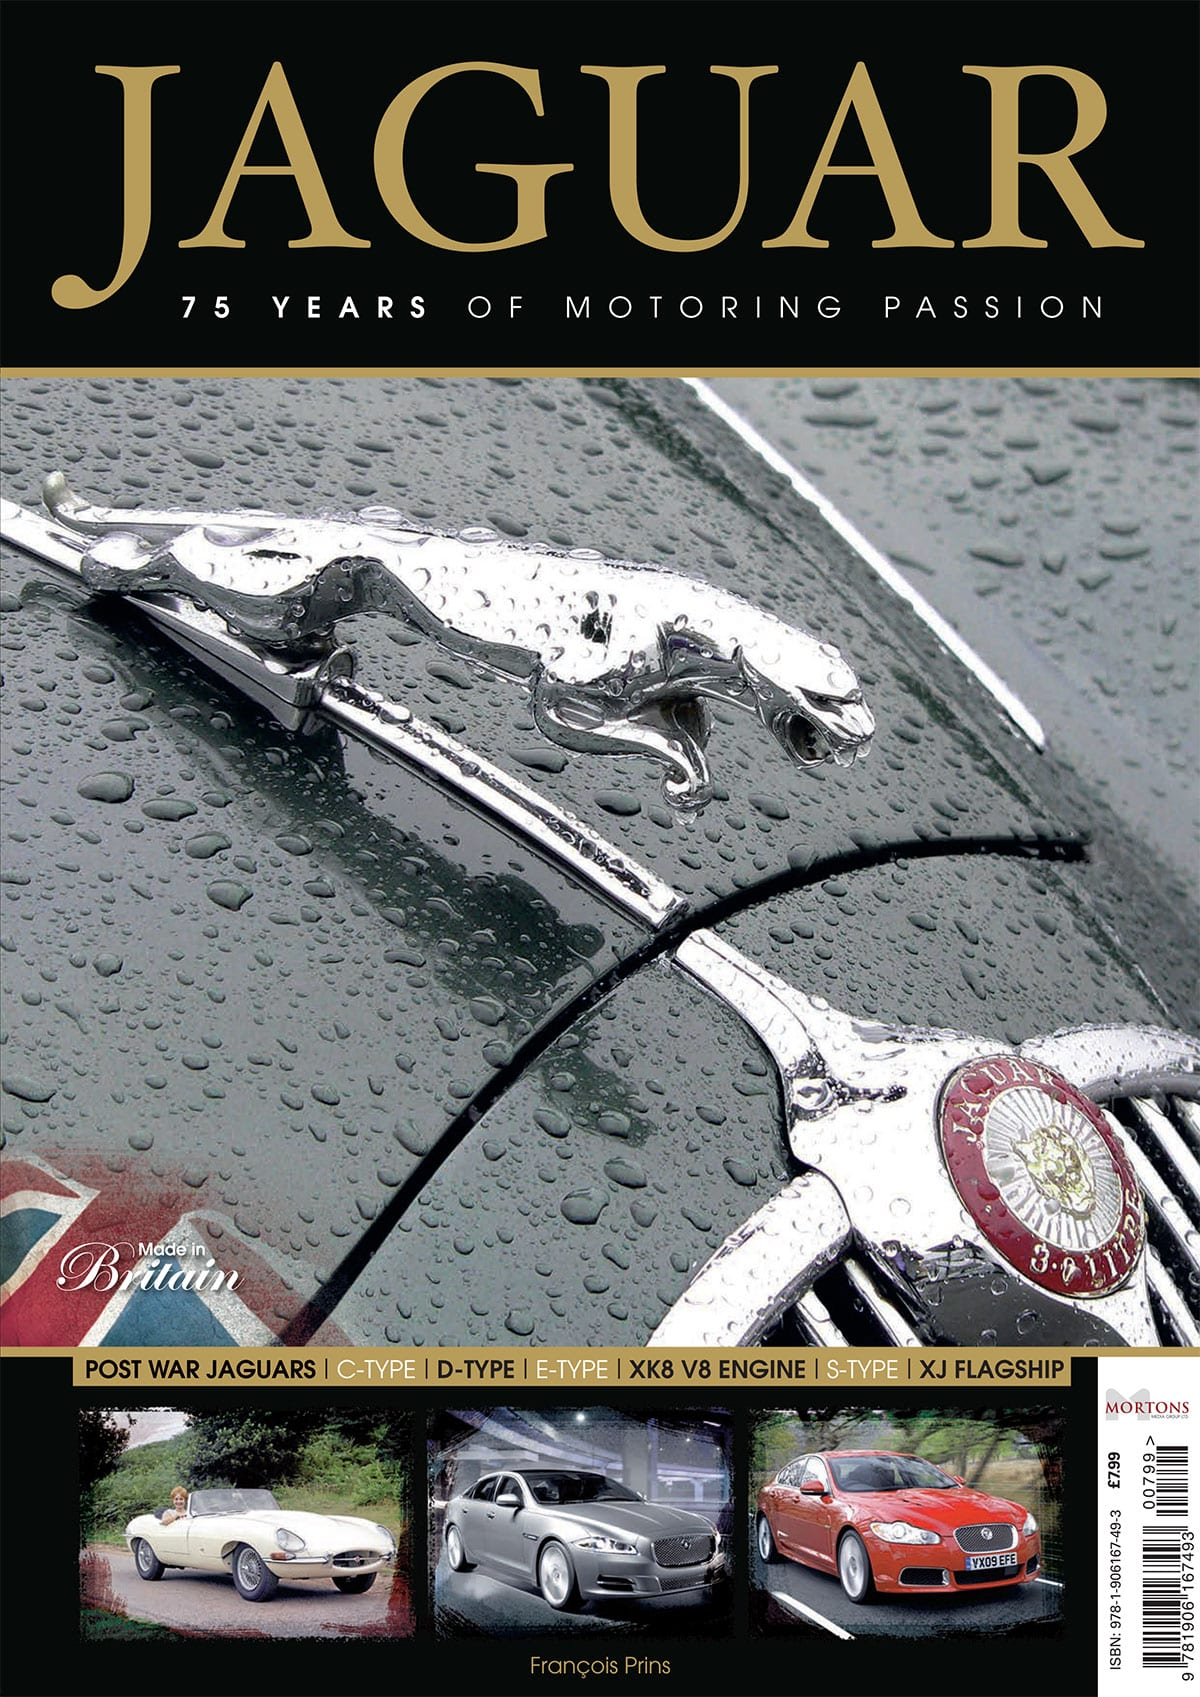 Jaguar - 75 Years of Motoring Passion